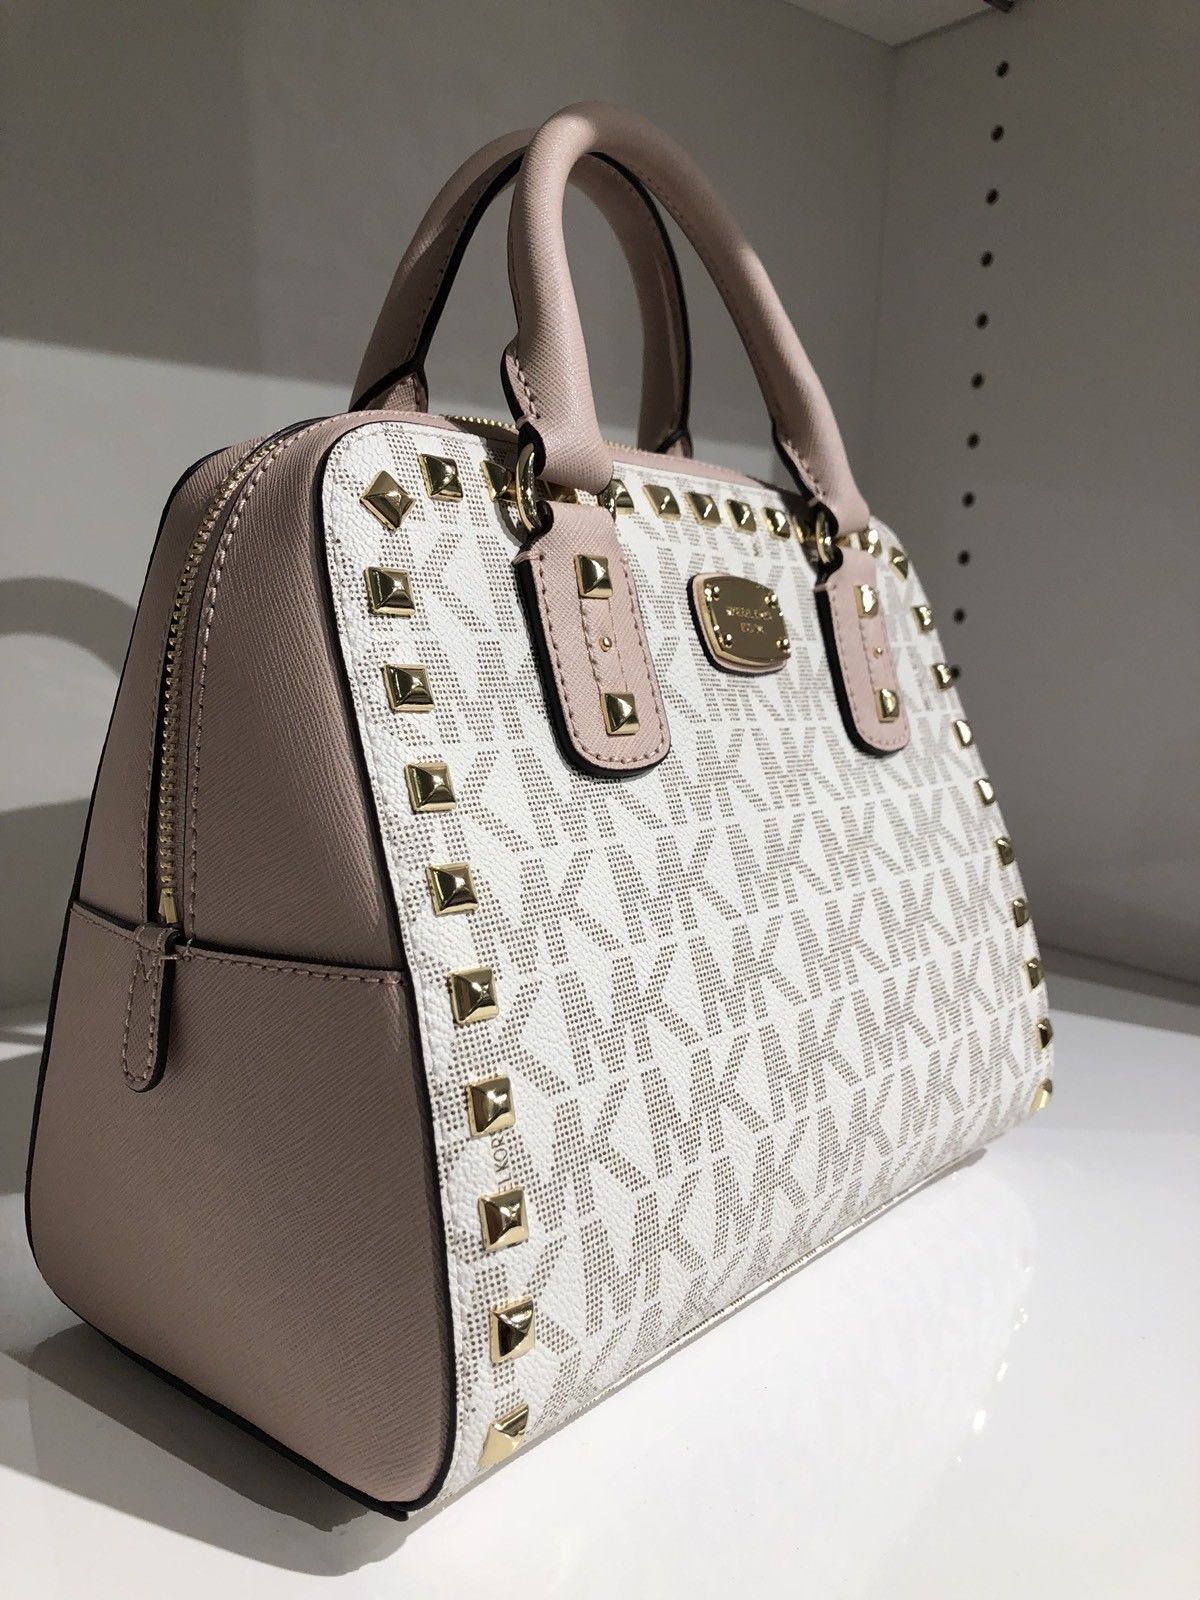 a02889139f73 NWT MICHAEL KORS $498 SANDRINE Stud SM Satchel Bag In VANILLA/BALLET PVC  Leather